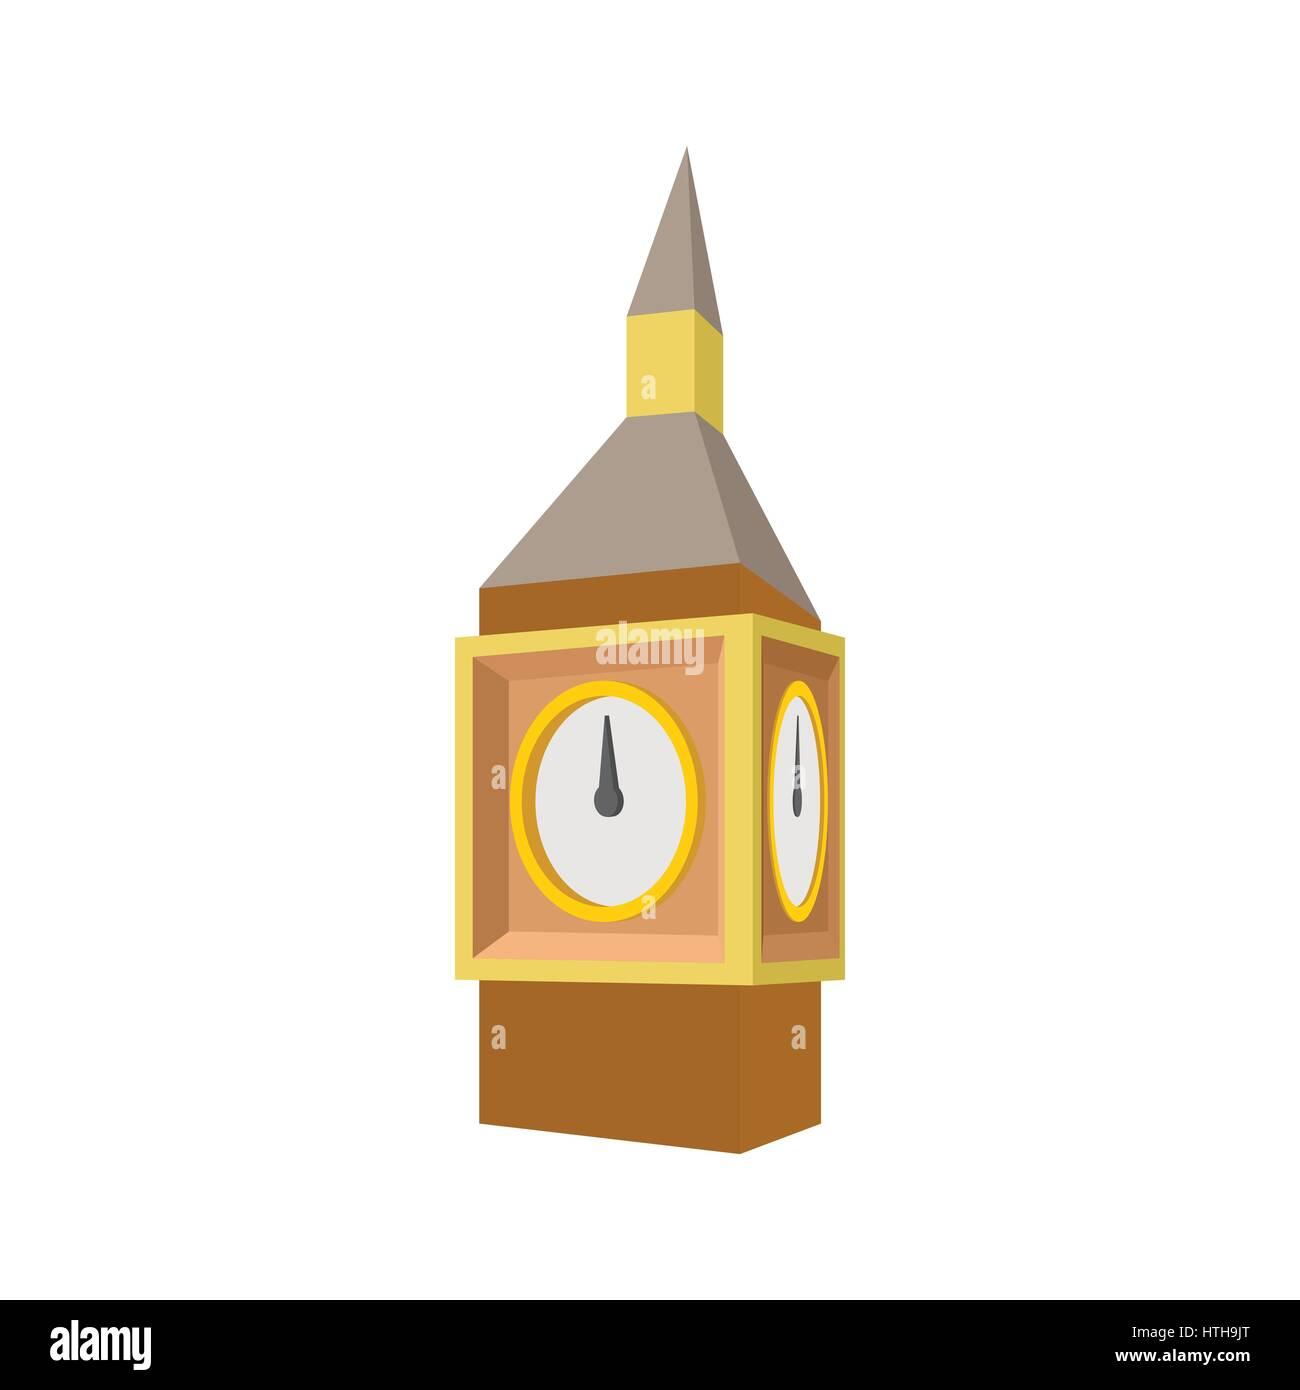 Big Ben in Westminster, London icon, cartoon style - Stock Image